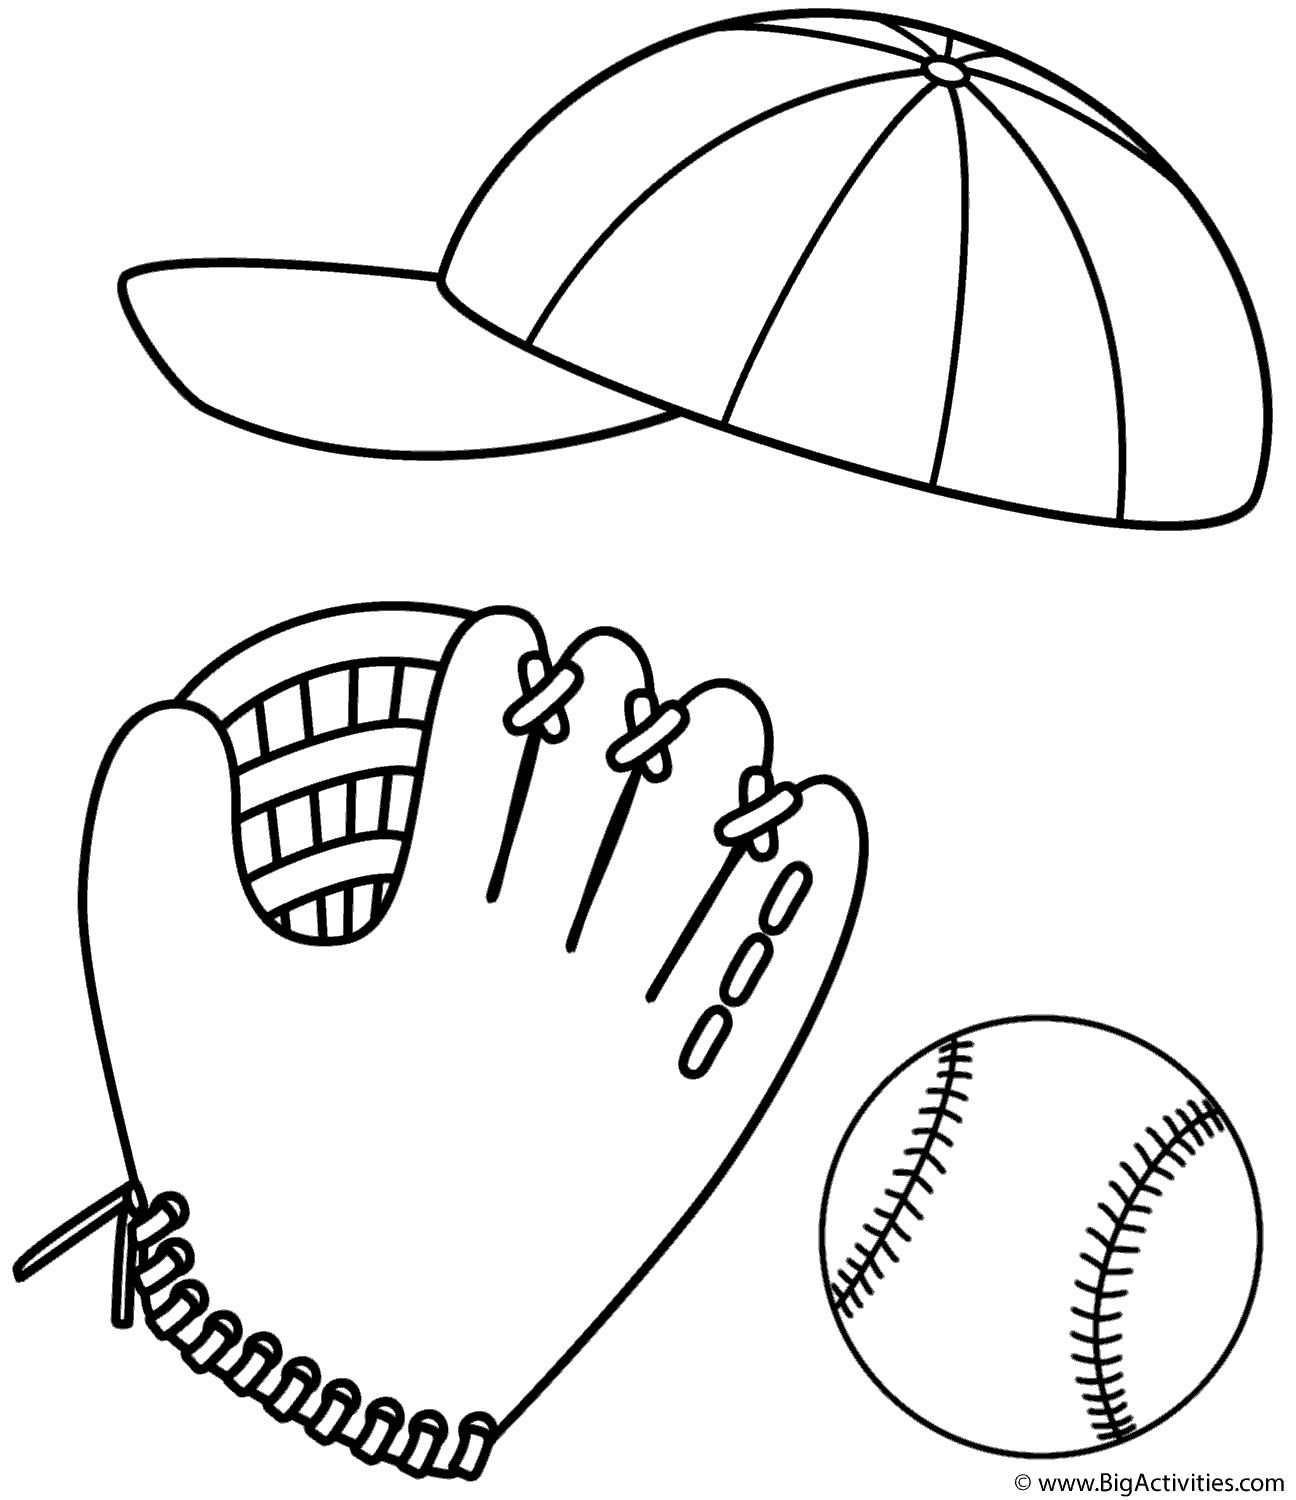 coloring baseball sporty coloring pages to print baseball baseball coloring baseball